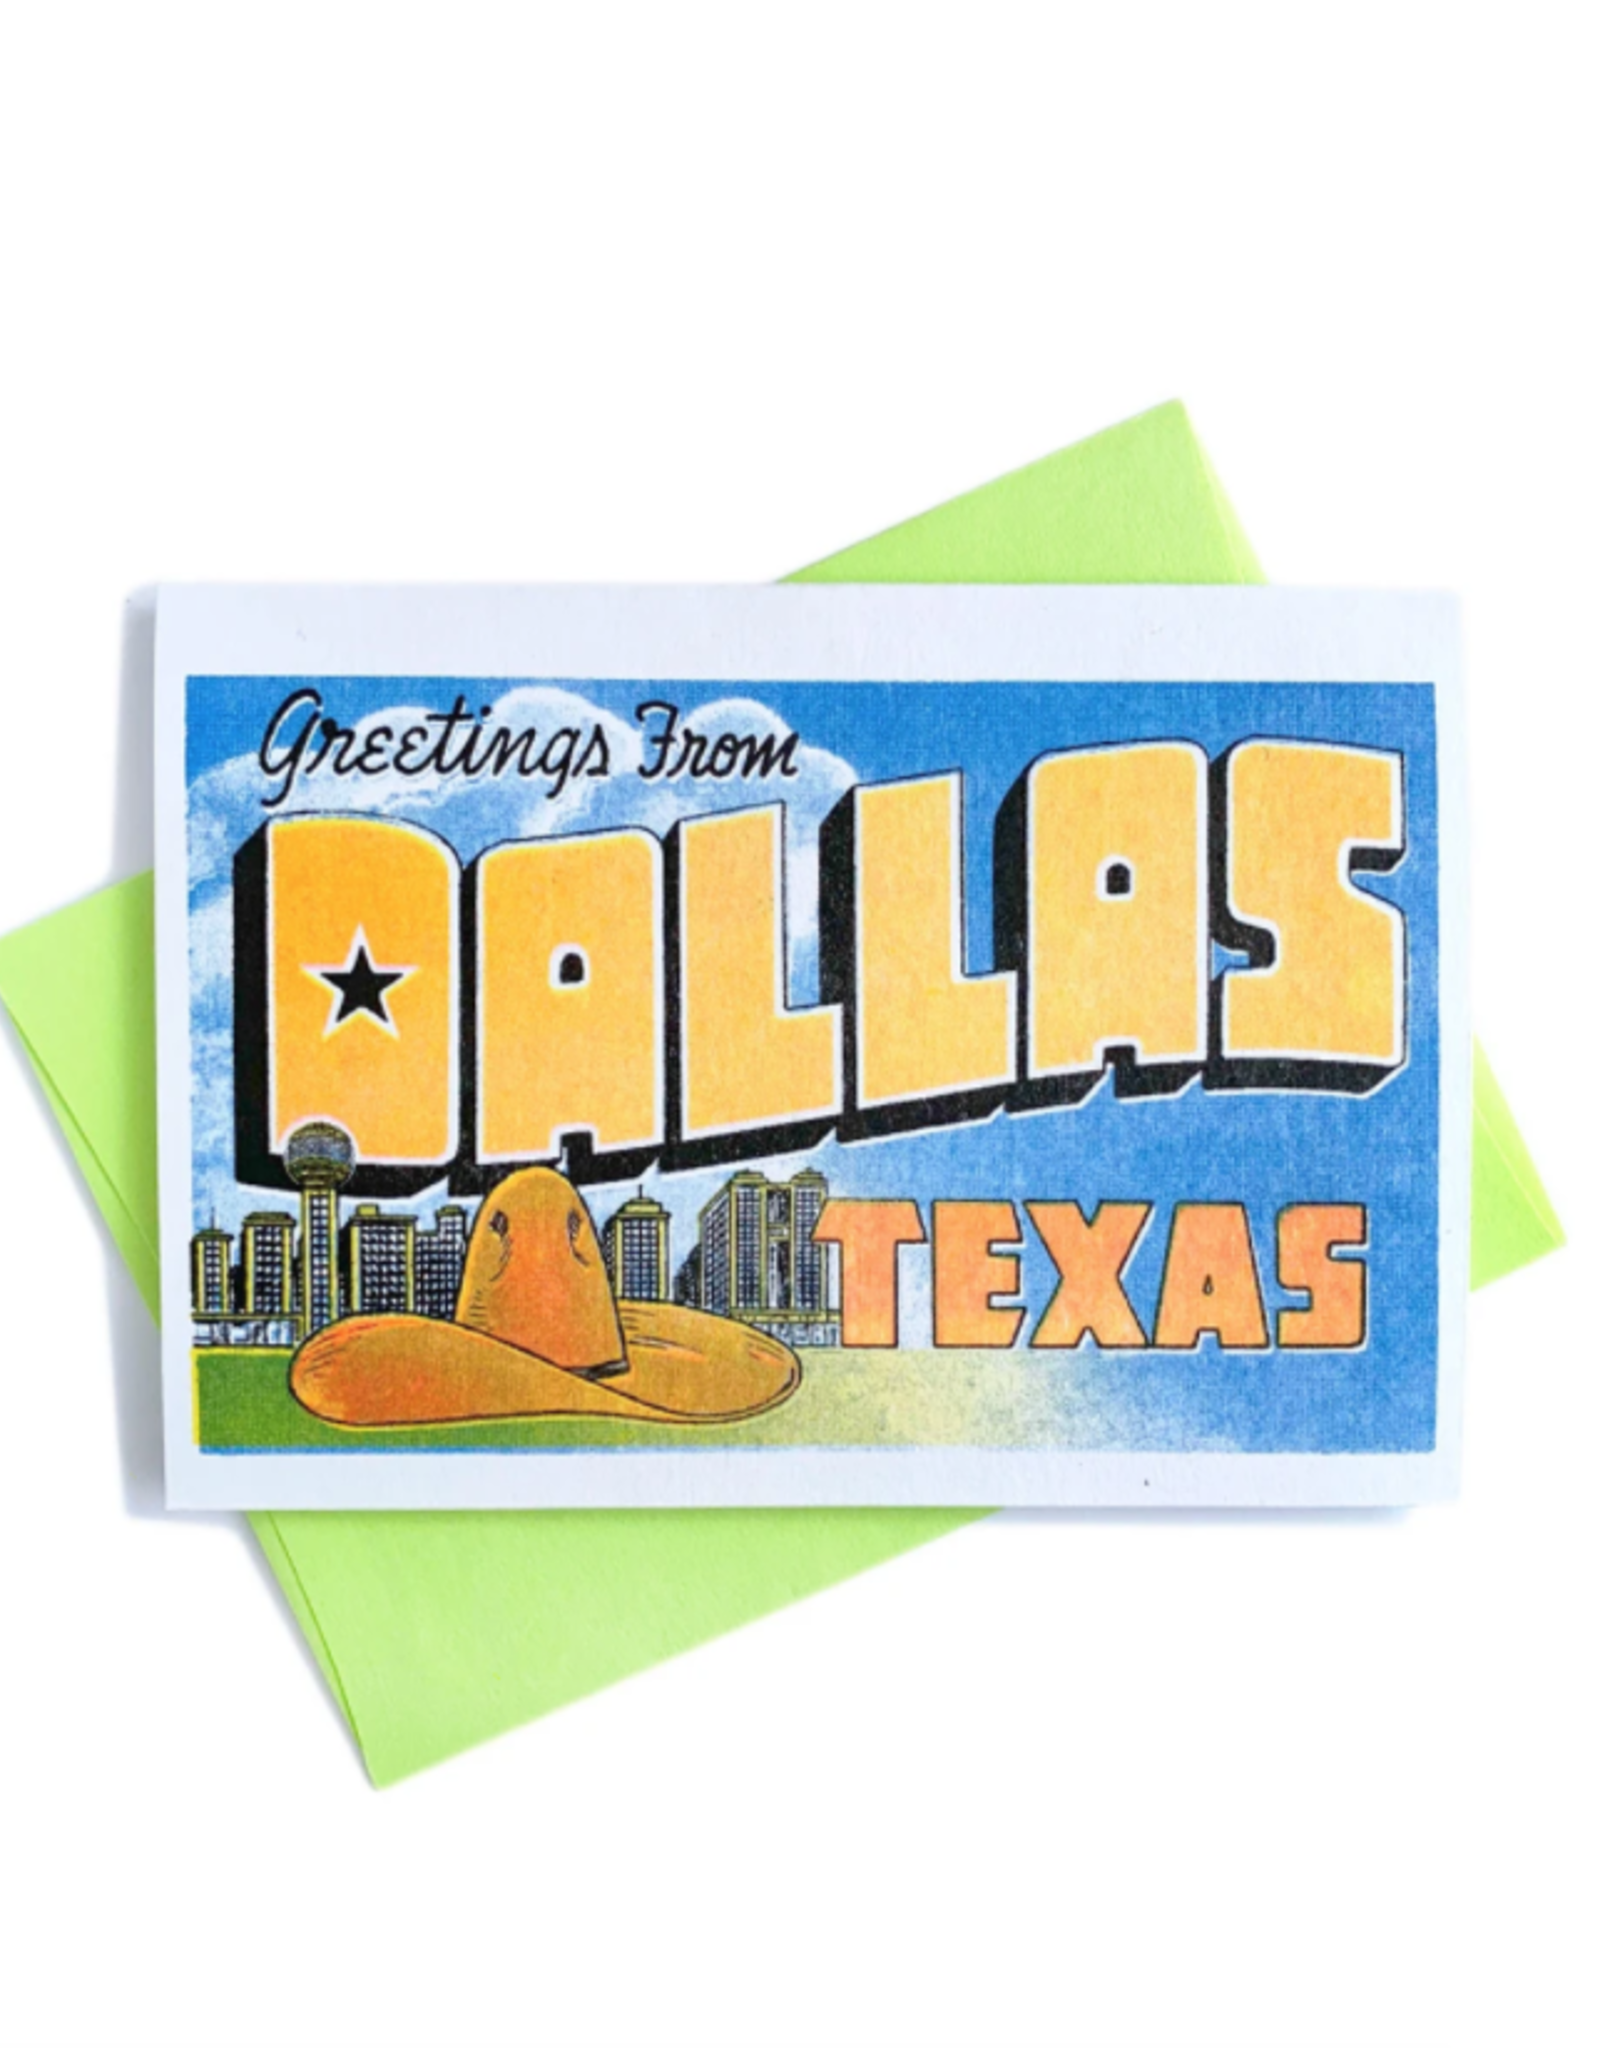 Greetings from Dallas, Texas Card